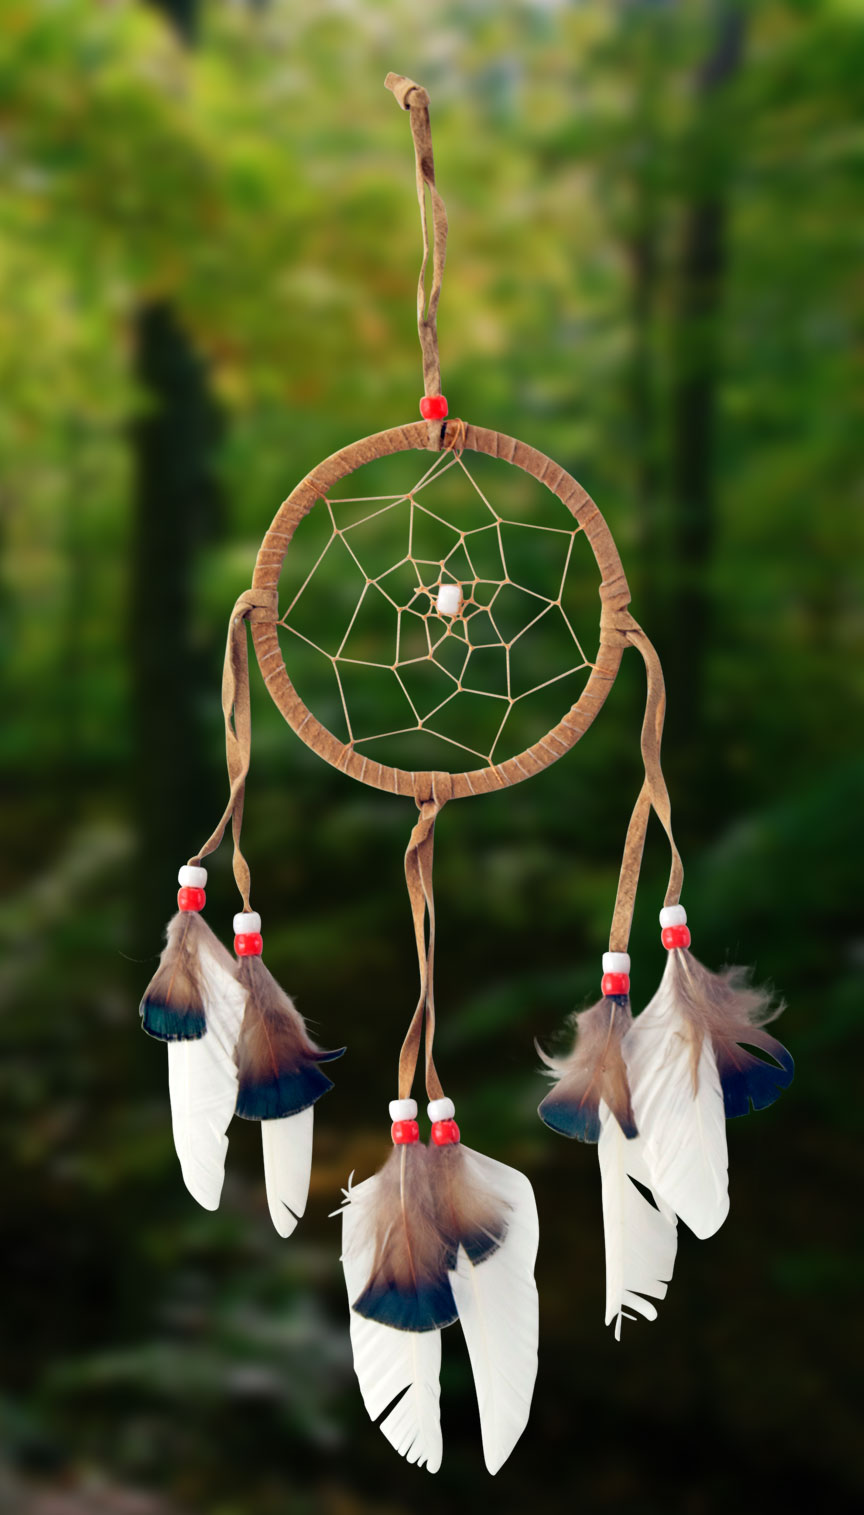 Shows an image of dreamcatcher owg003 on a scenic background